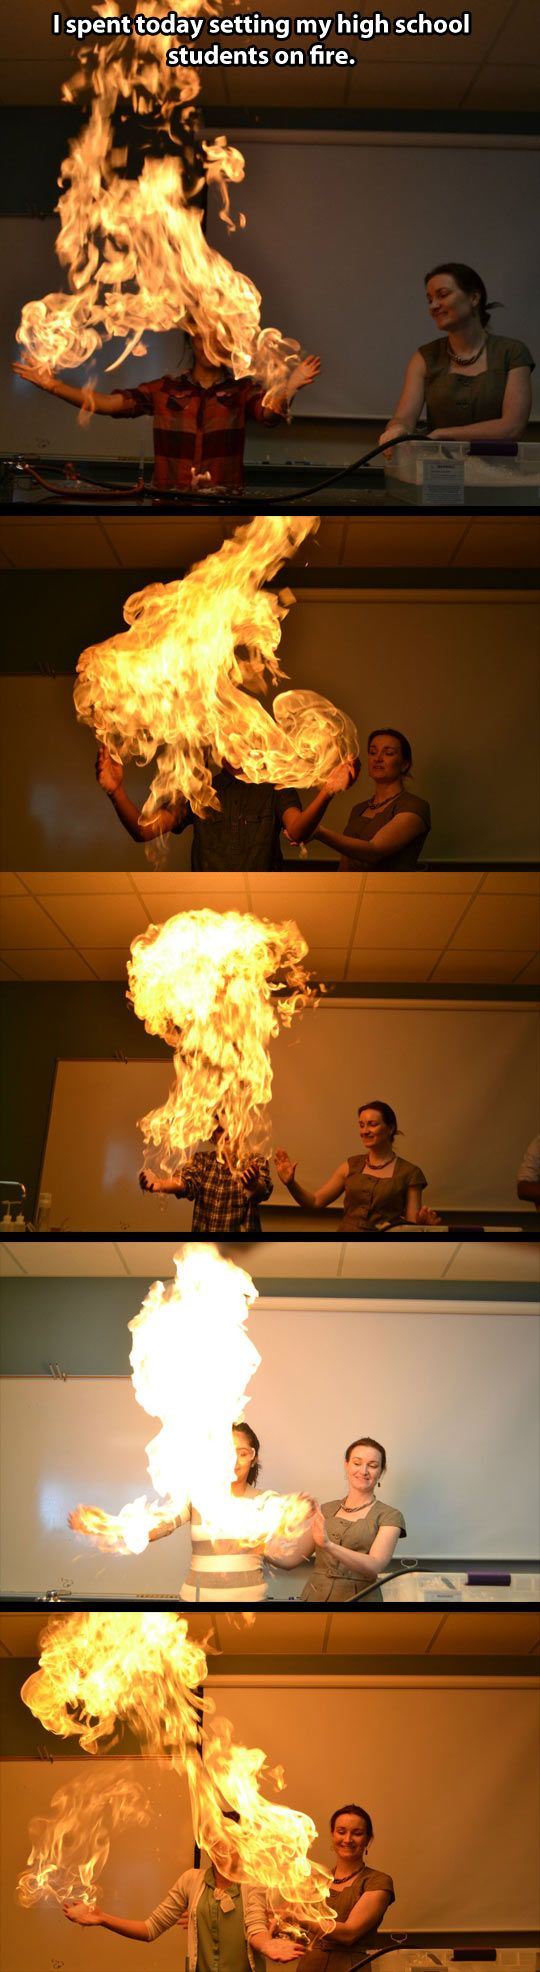 And they wonder why we homeschool.  Do you really want some one setting your kids on fire in the name of science?